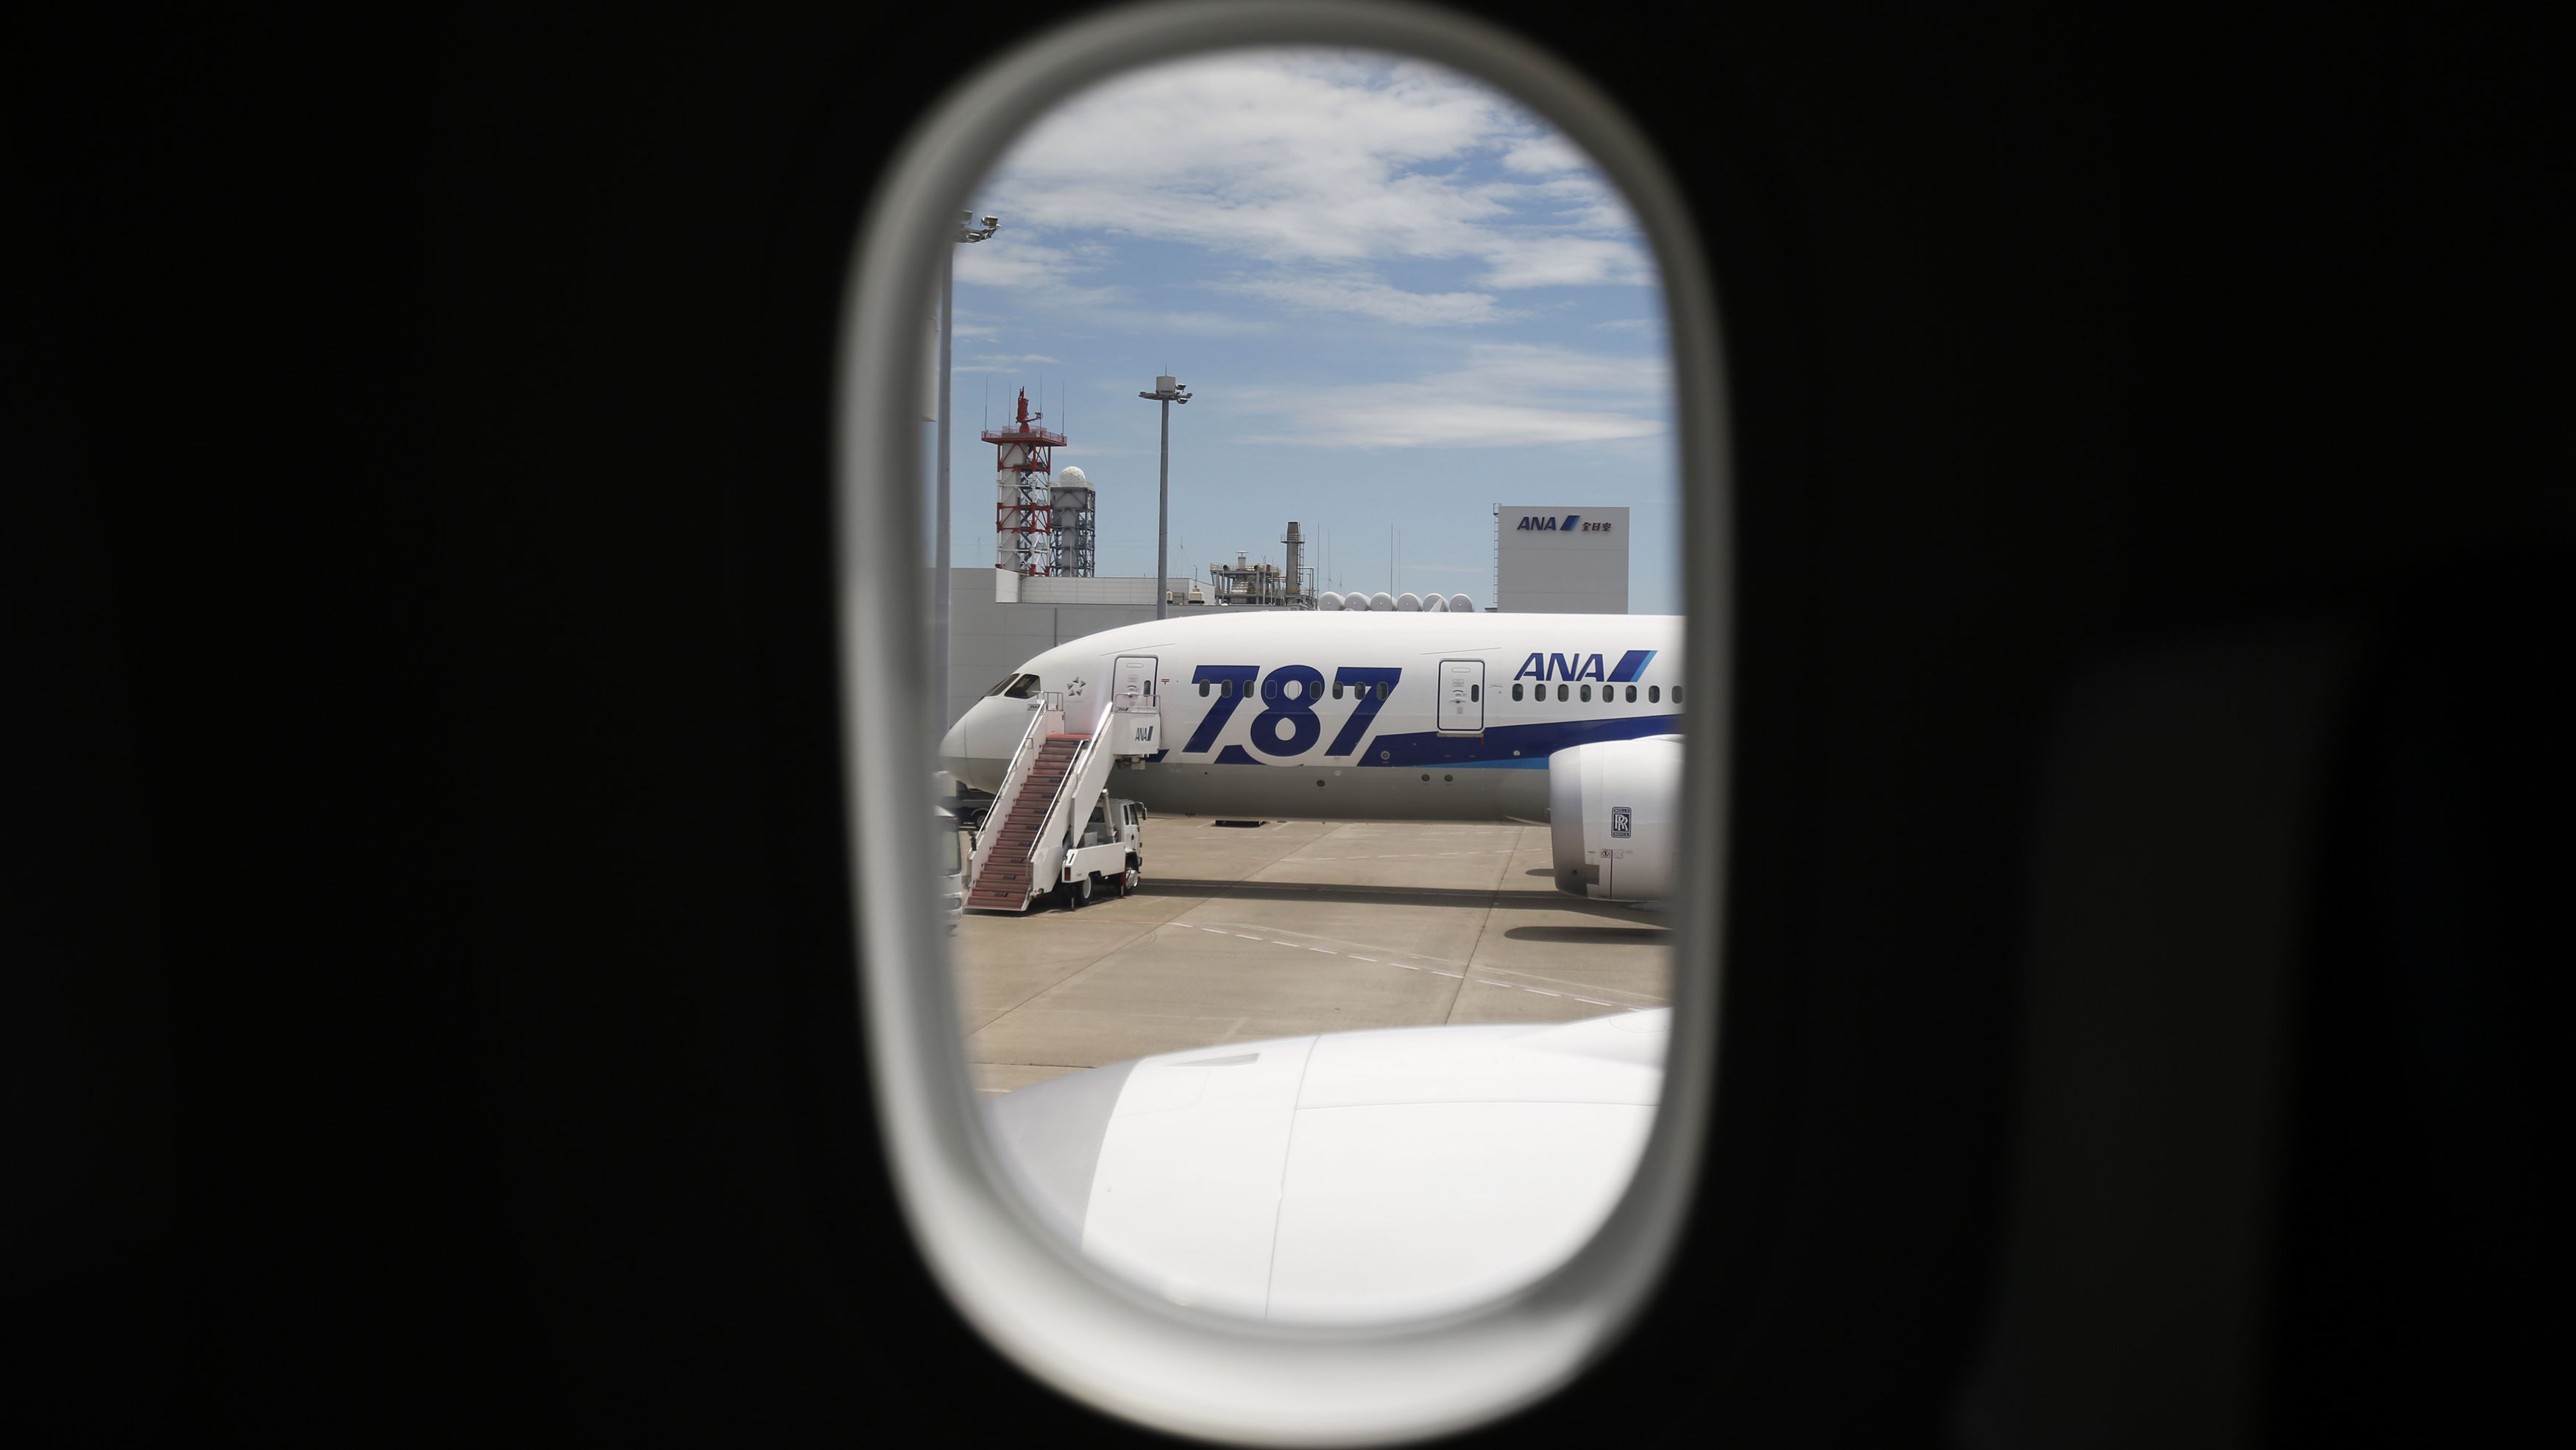 An All Nippon Airways' (ANA) Boeing 787-8 Dreamliner airplane is seen through a window of a Boeing 787-9 Dreamliner during a media preview at Haneda airport in Tokyo August 4, 2014. Japanese airliner ANA will launch the world's first commercial Boeing Dreamliner 787-9 service on August 7 for domestic flights. REUTERS/Yuya Shino (JAPAN - Tags: TRANSPORT BUSINESS) - RTR414NH